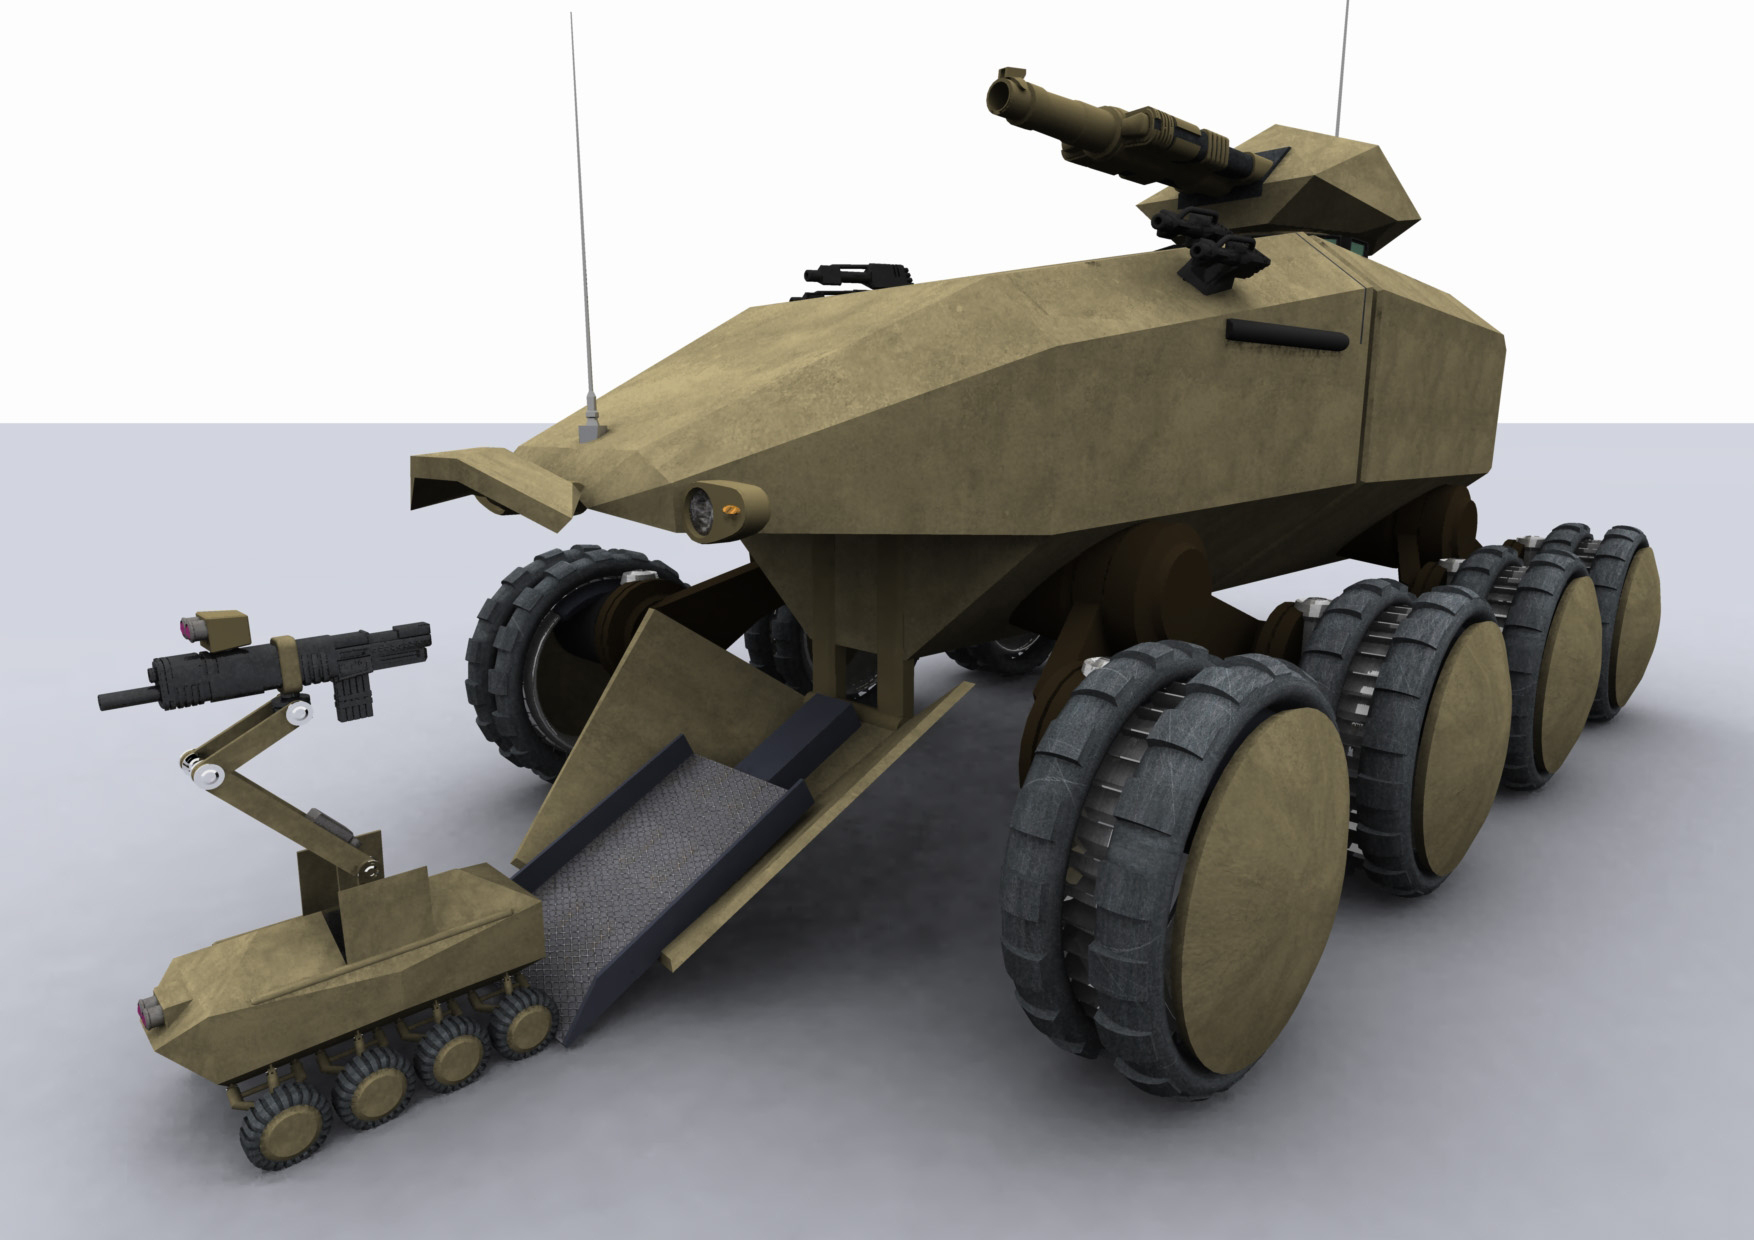 A computer graphic simulation of a Future Protected Vehicle called Drone (MOD image library)